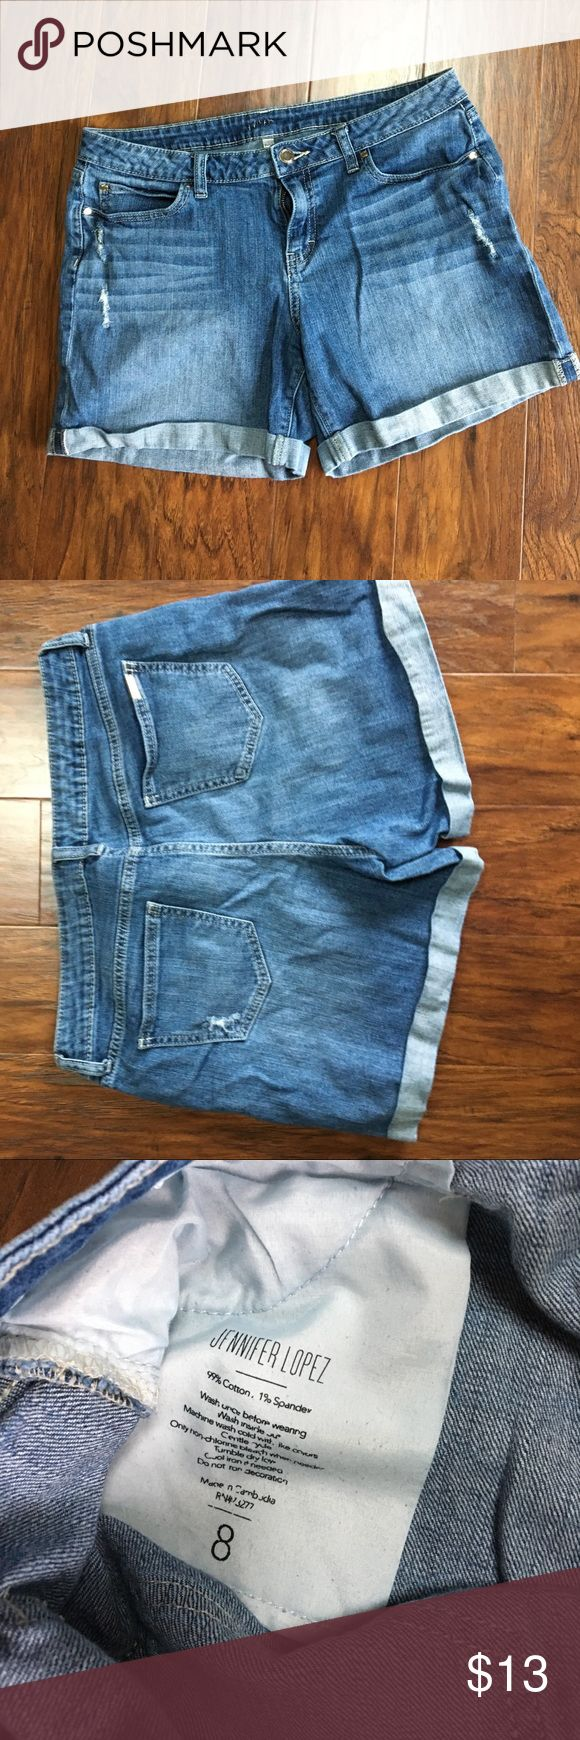 Jennifer Lopez Distressed Boyfriend Shorts The perfect boyfriend shorts for the summer! Only worn a handful of times and I am just not a Shorts person. In perfect shape! Jennifer Lopez Shorts Jean Shorts